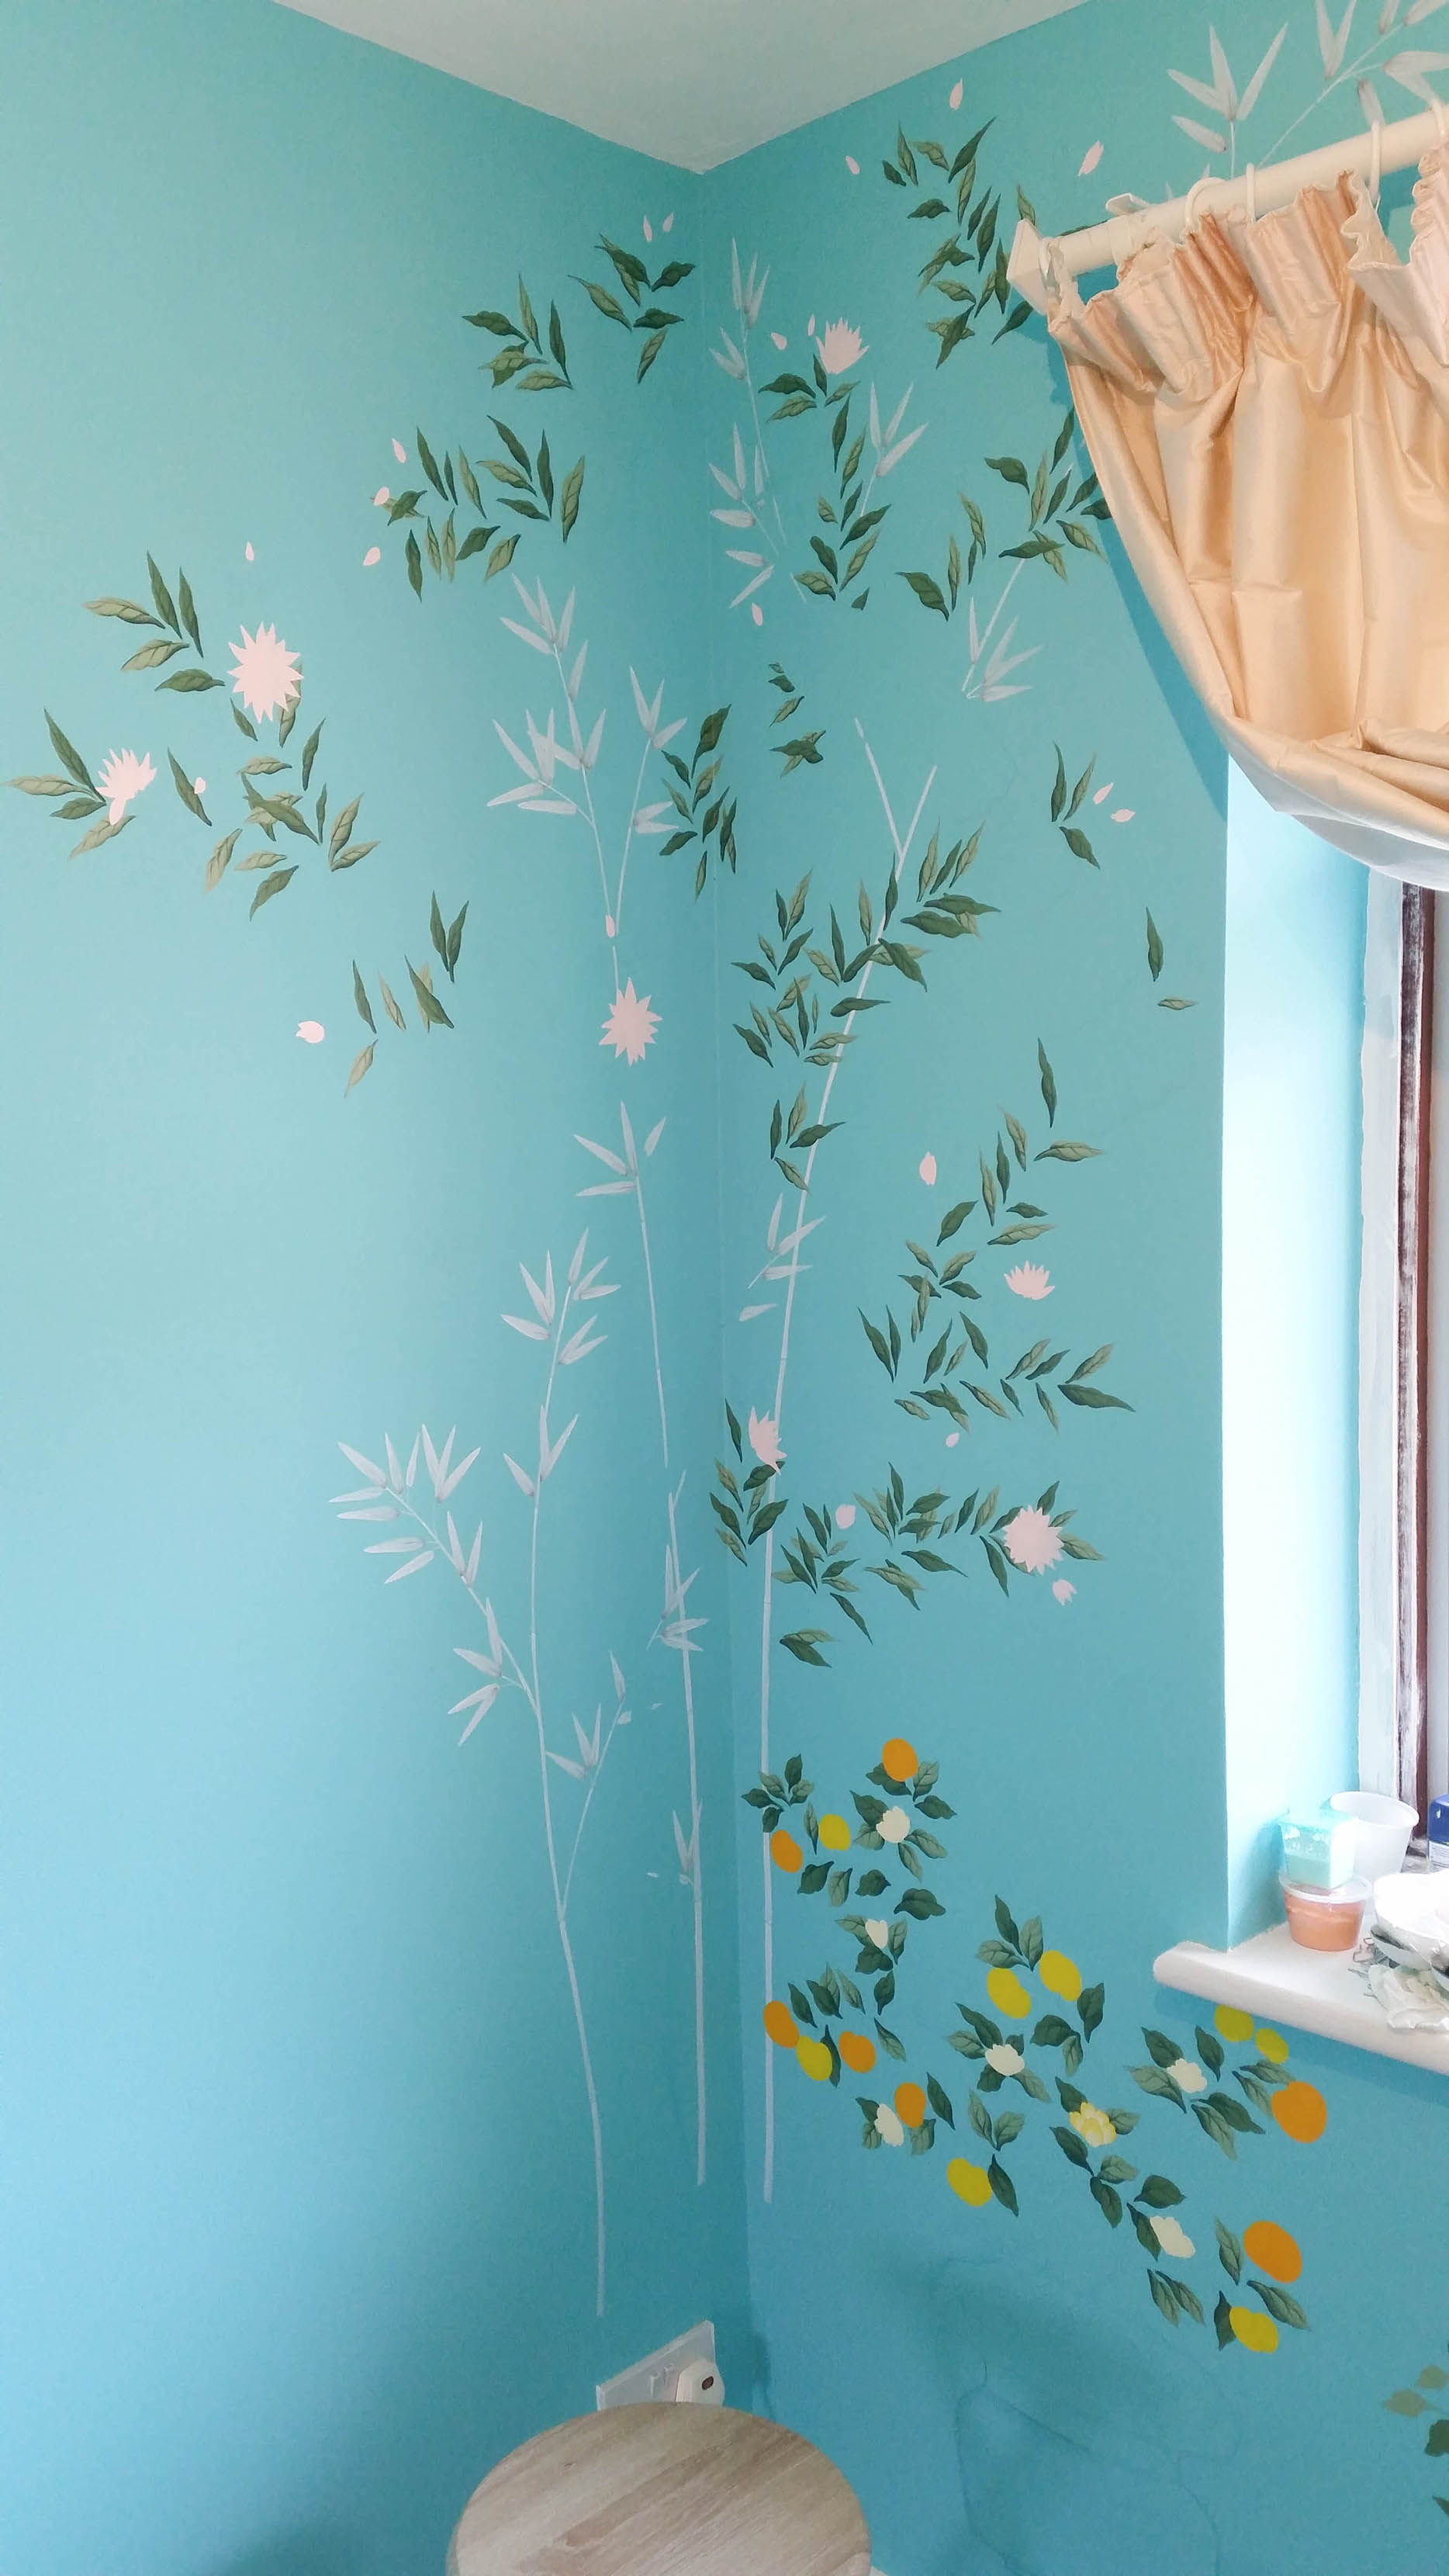 Diane Hill painting leaves chinoiserie design